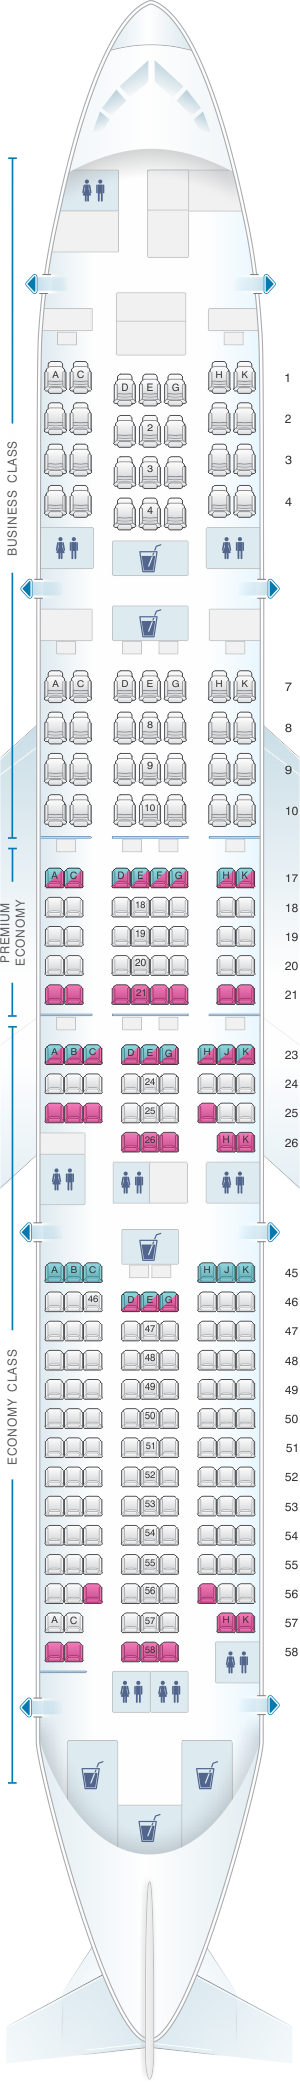 Seat map for Japan Airlines (JAL) Boeing B777 200ER W51